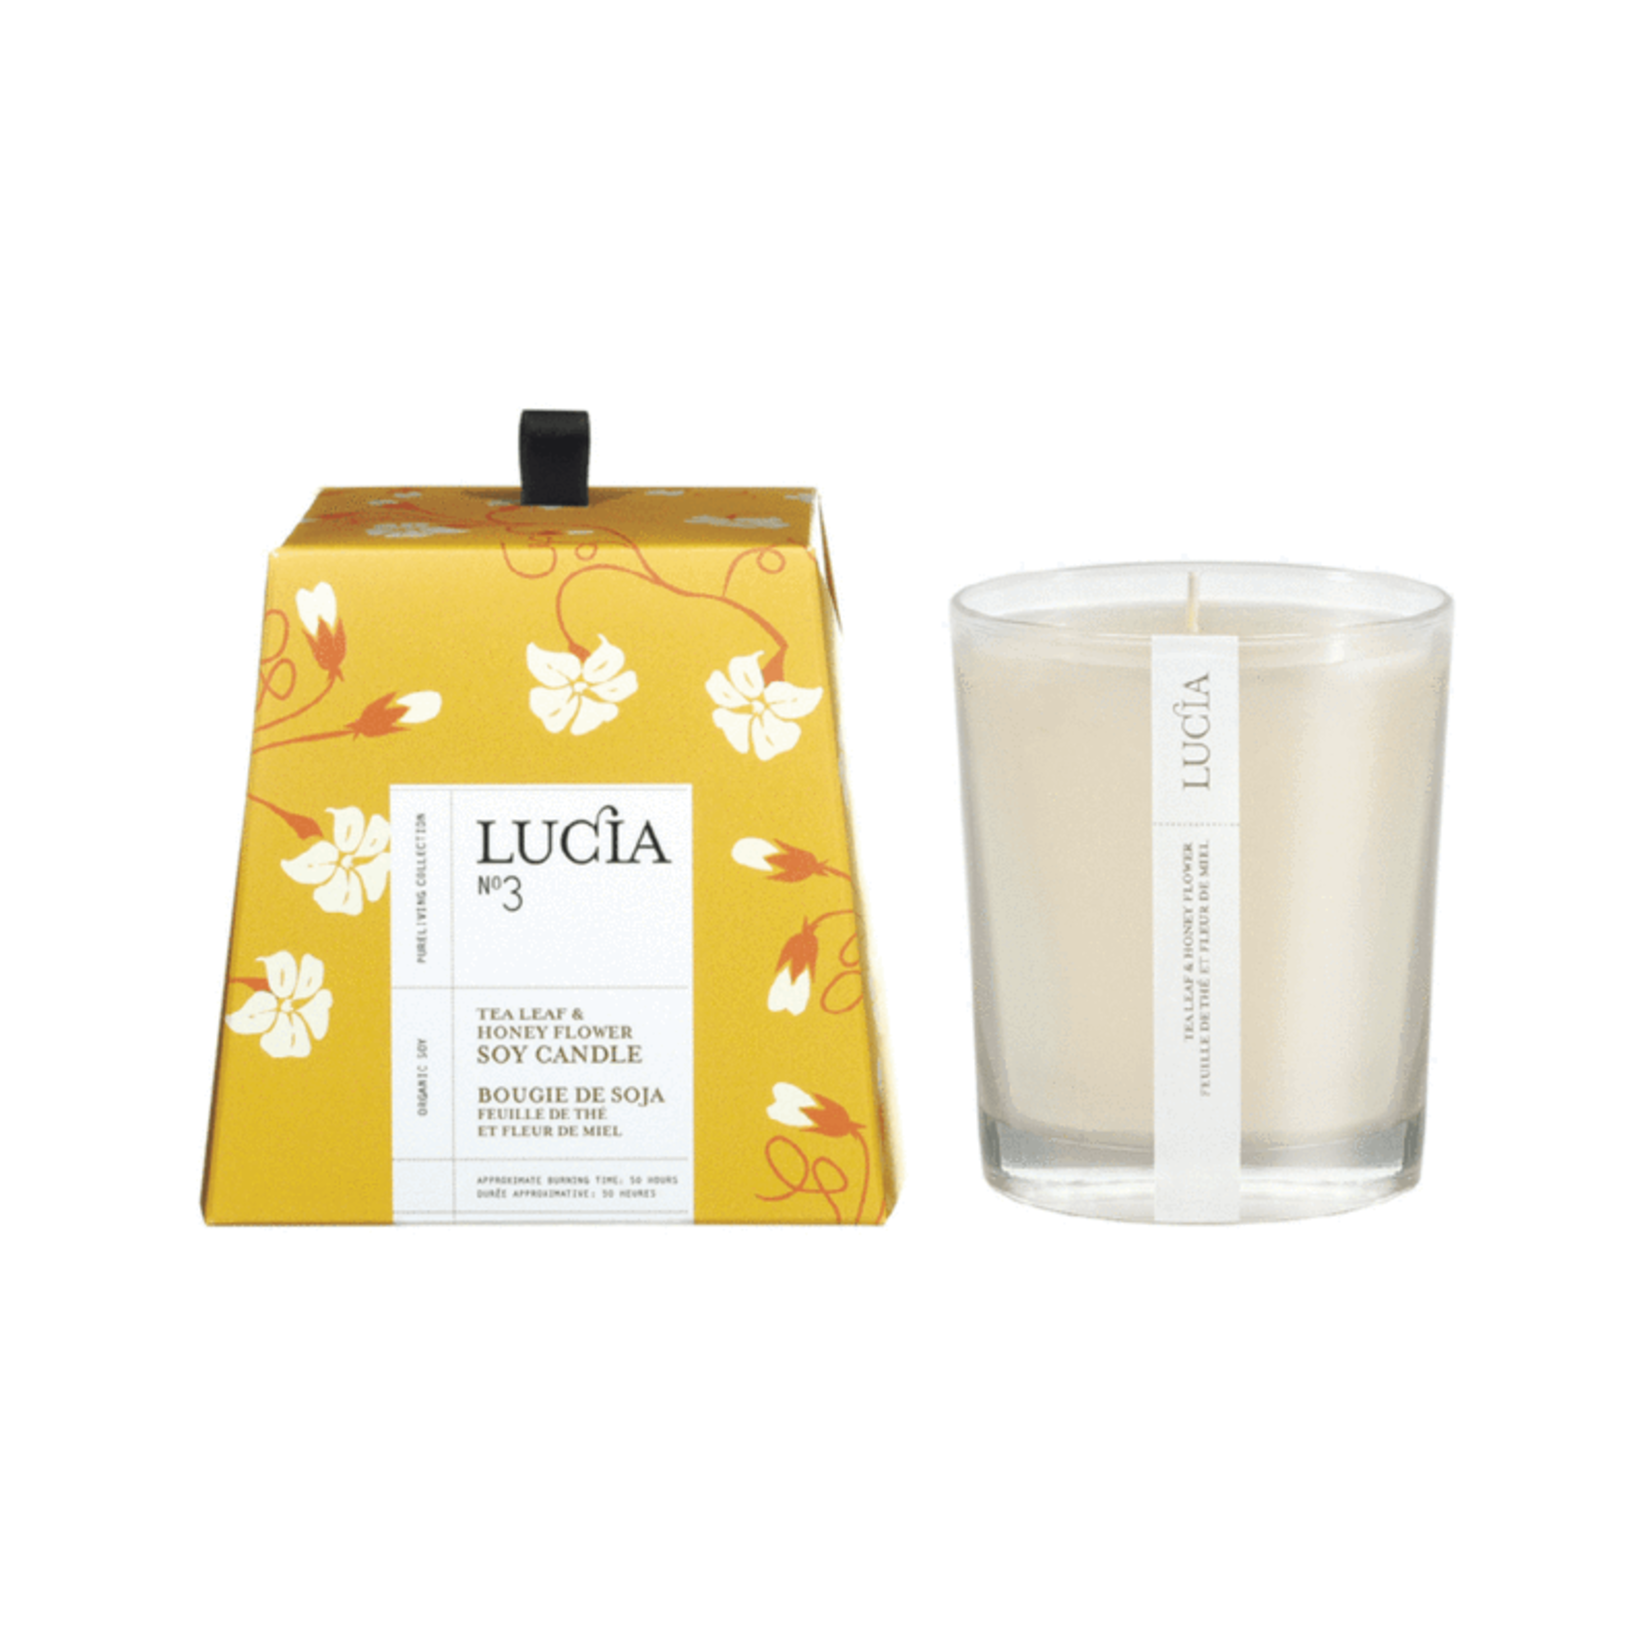 Lucia LUCIA no 3 - Bougie 20 H